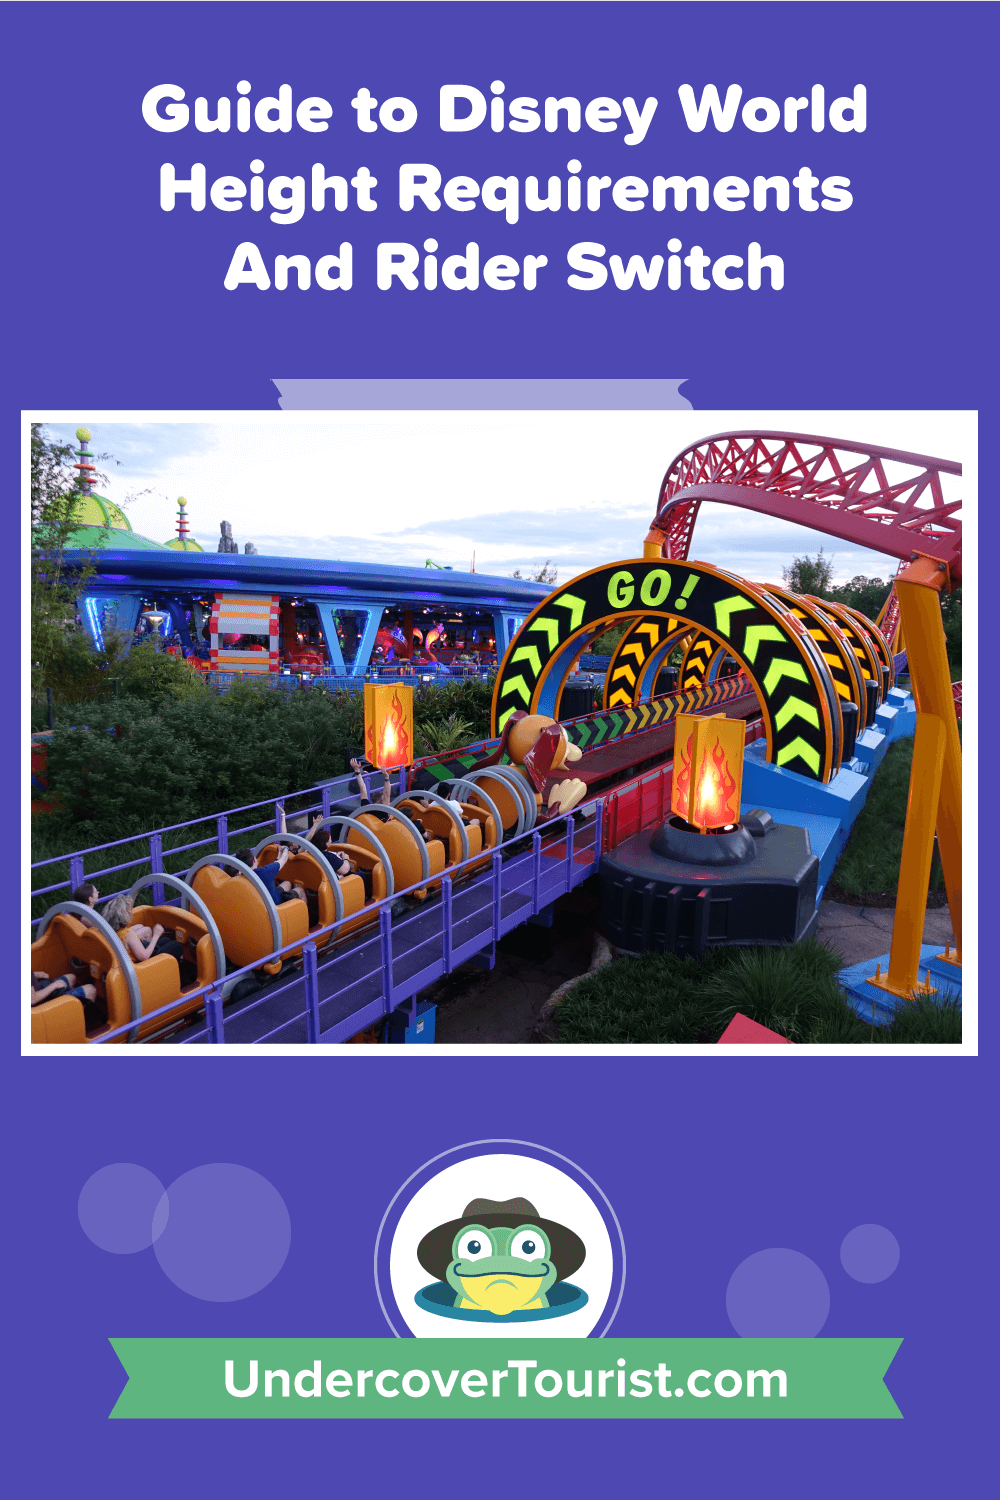 Guide To Disney World Height Requirements And Rider Switch